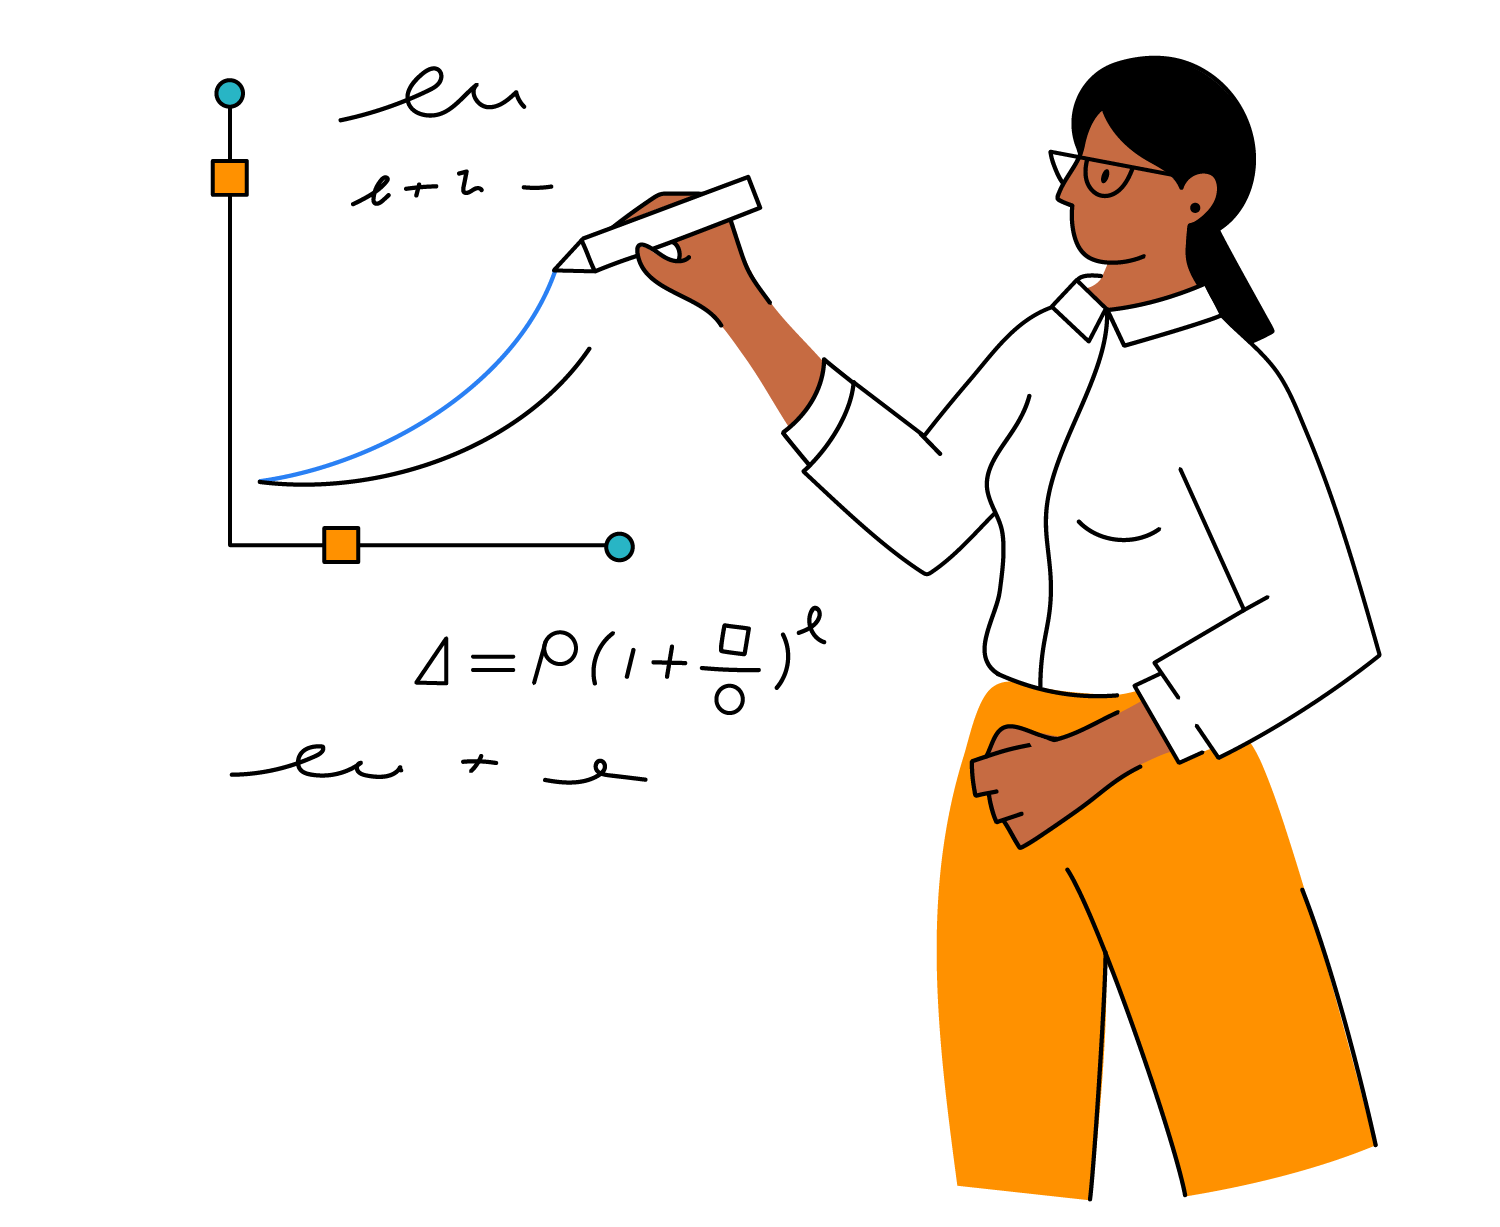 Illustration of woman recording increasing investment values